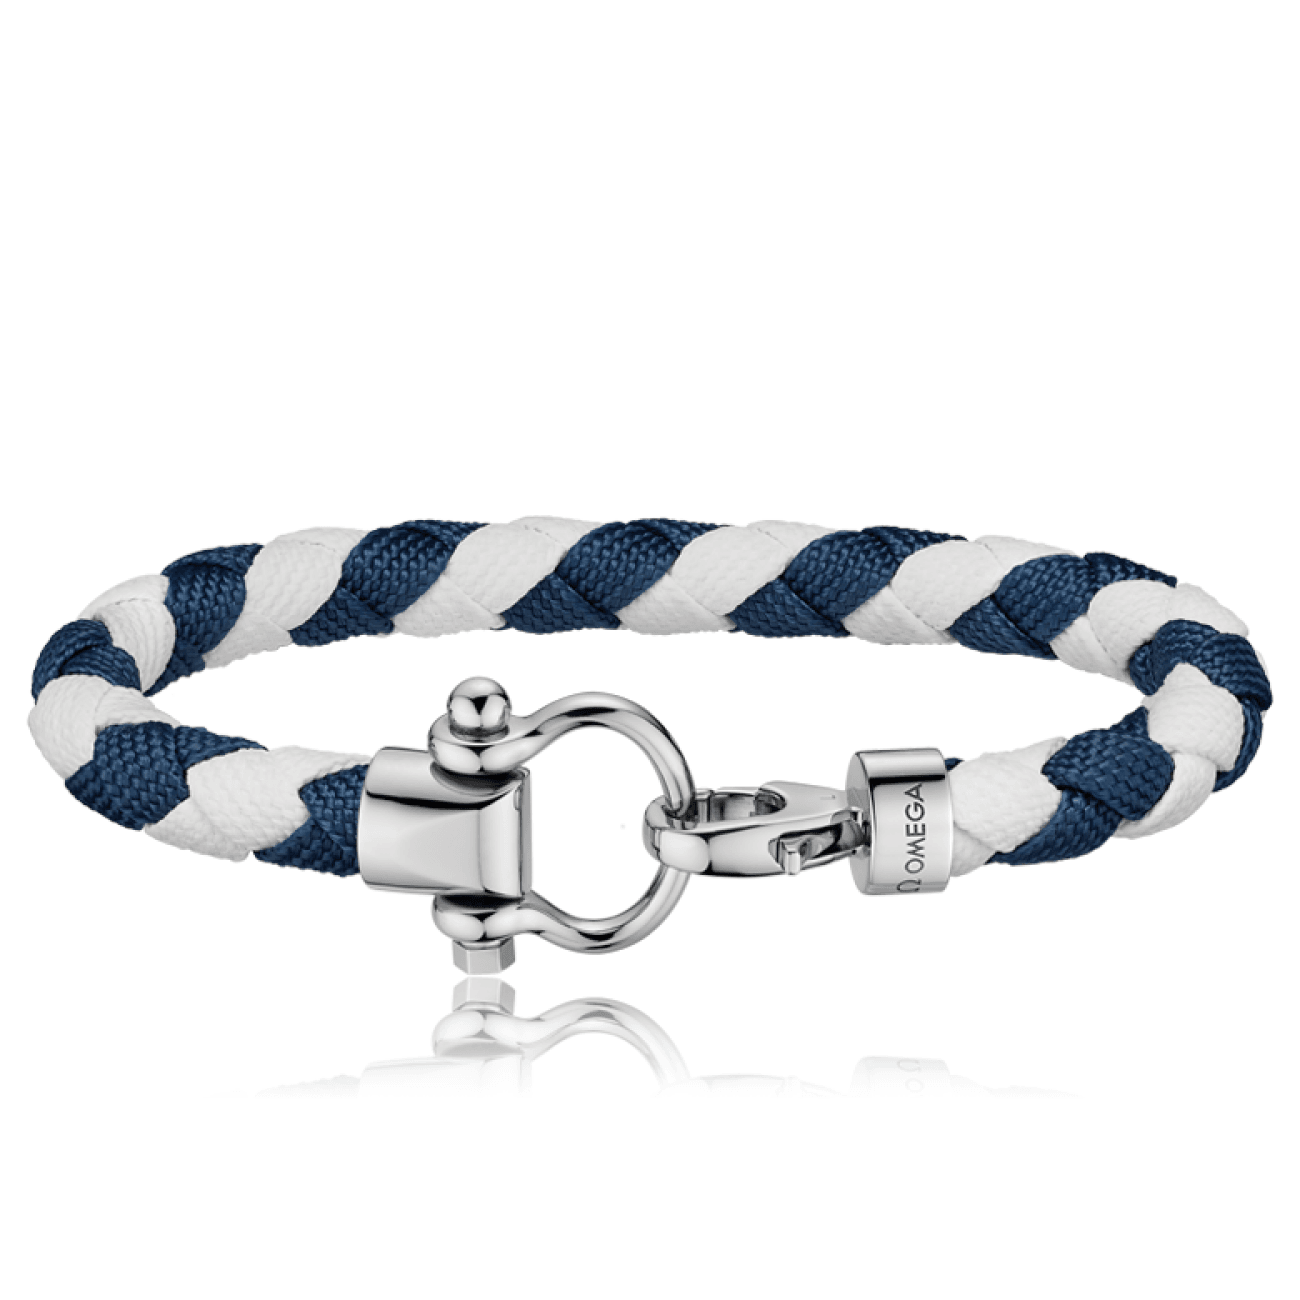 Omega Accessories - Sailing bracelet in stainless steel white and dark blue braided nylon | Manfredi Jewels